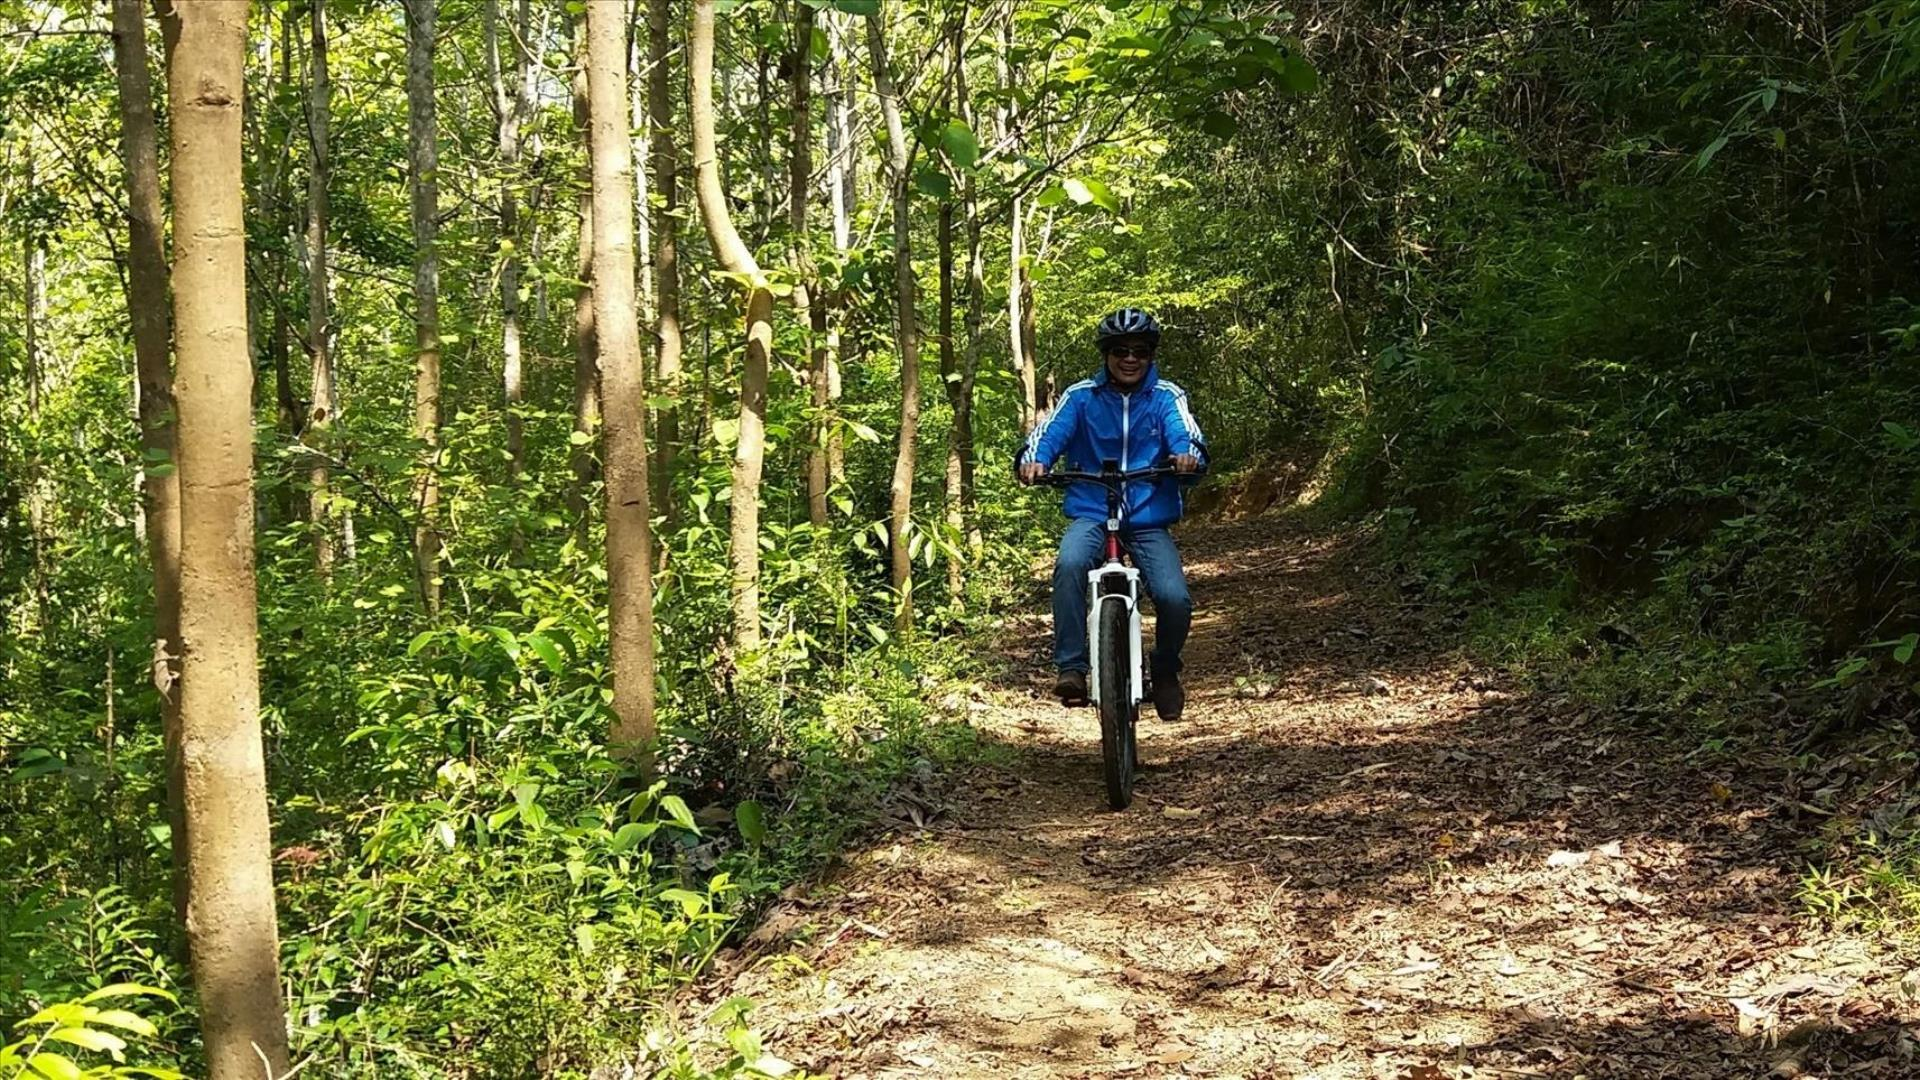 Laos, Luang Prabang : E—Mountain Bike Adventure - 1 Day | E—Mountain Biking on the Nam Khan River